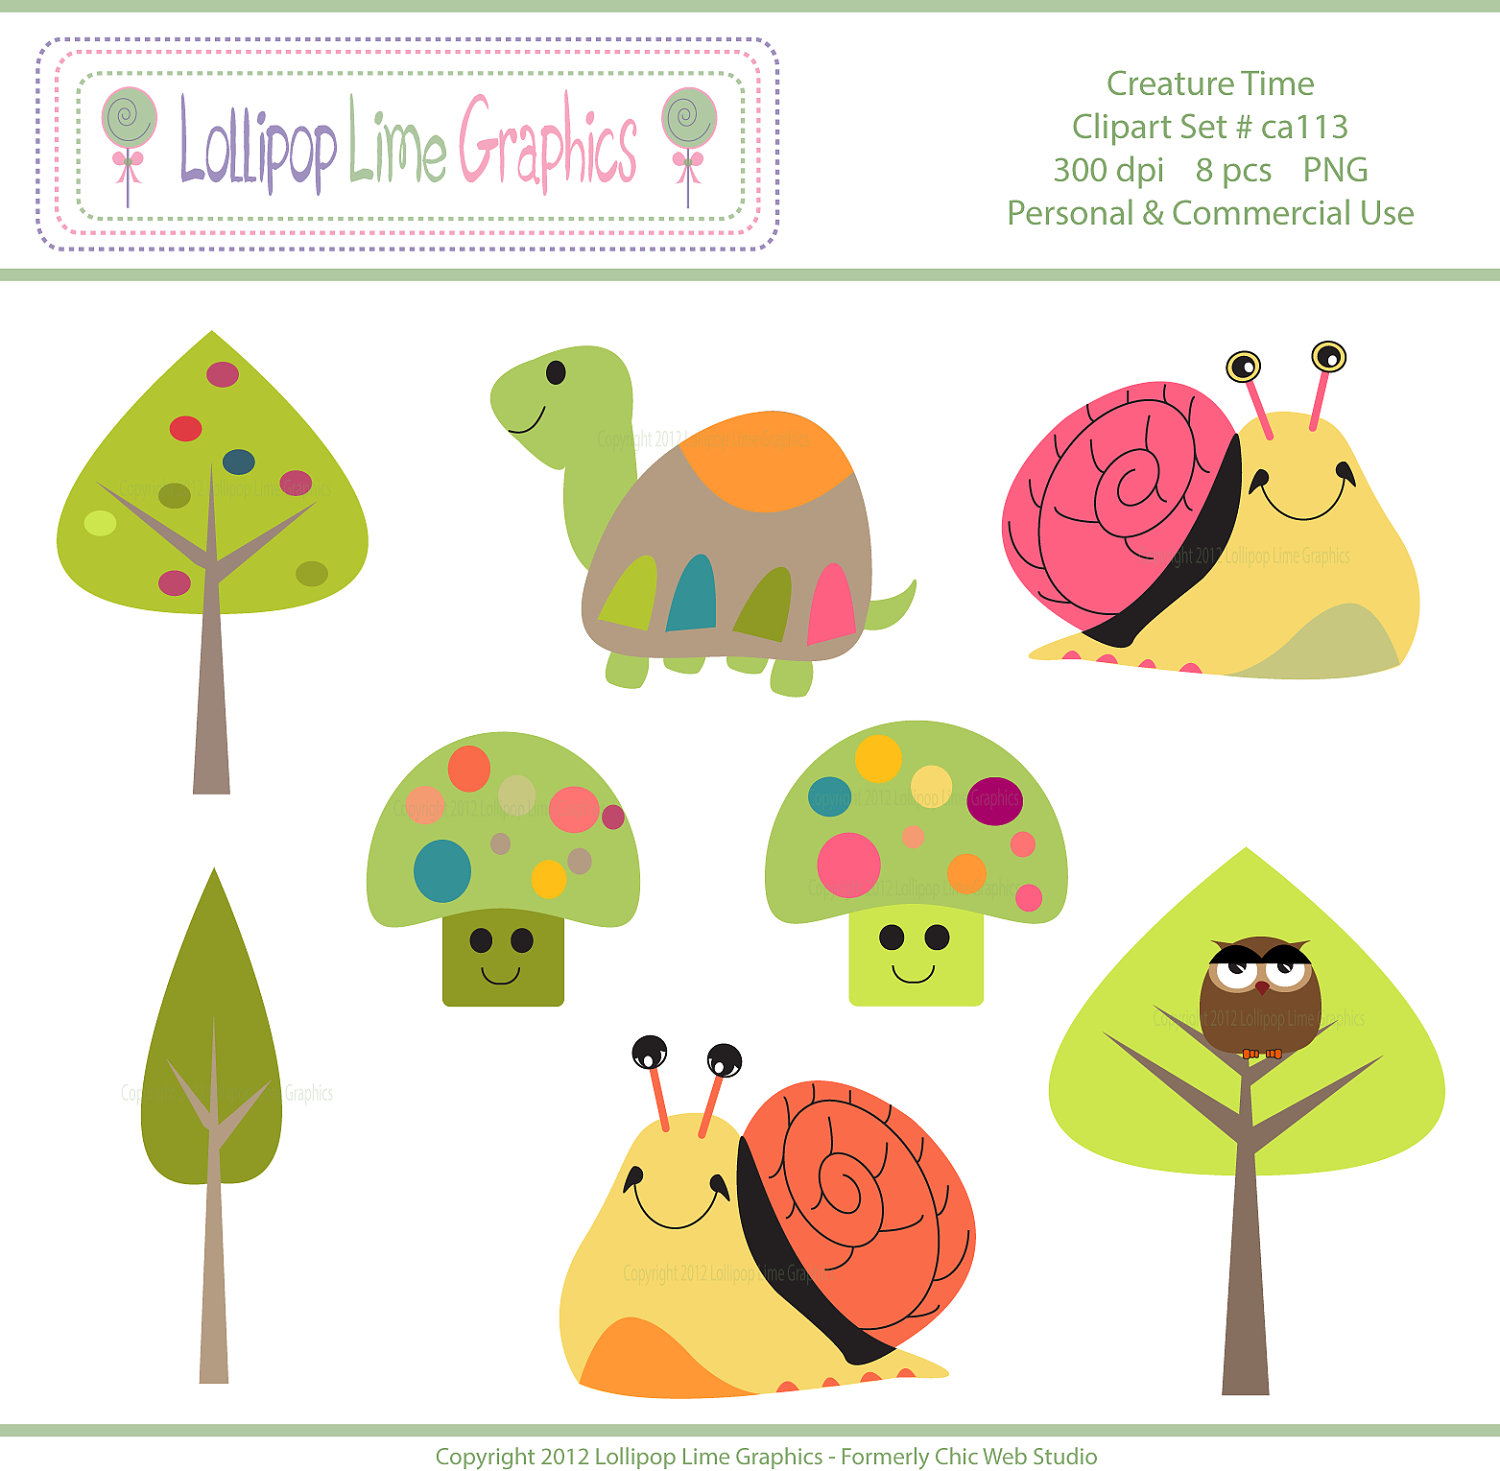 Cute Snail Turtle Tree Mushroom Owl Clipart Digital Clip Art.